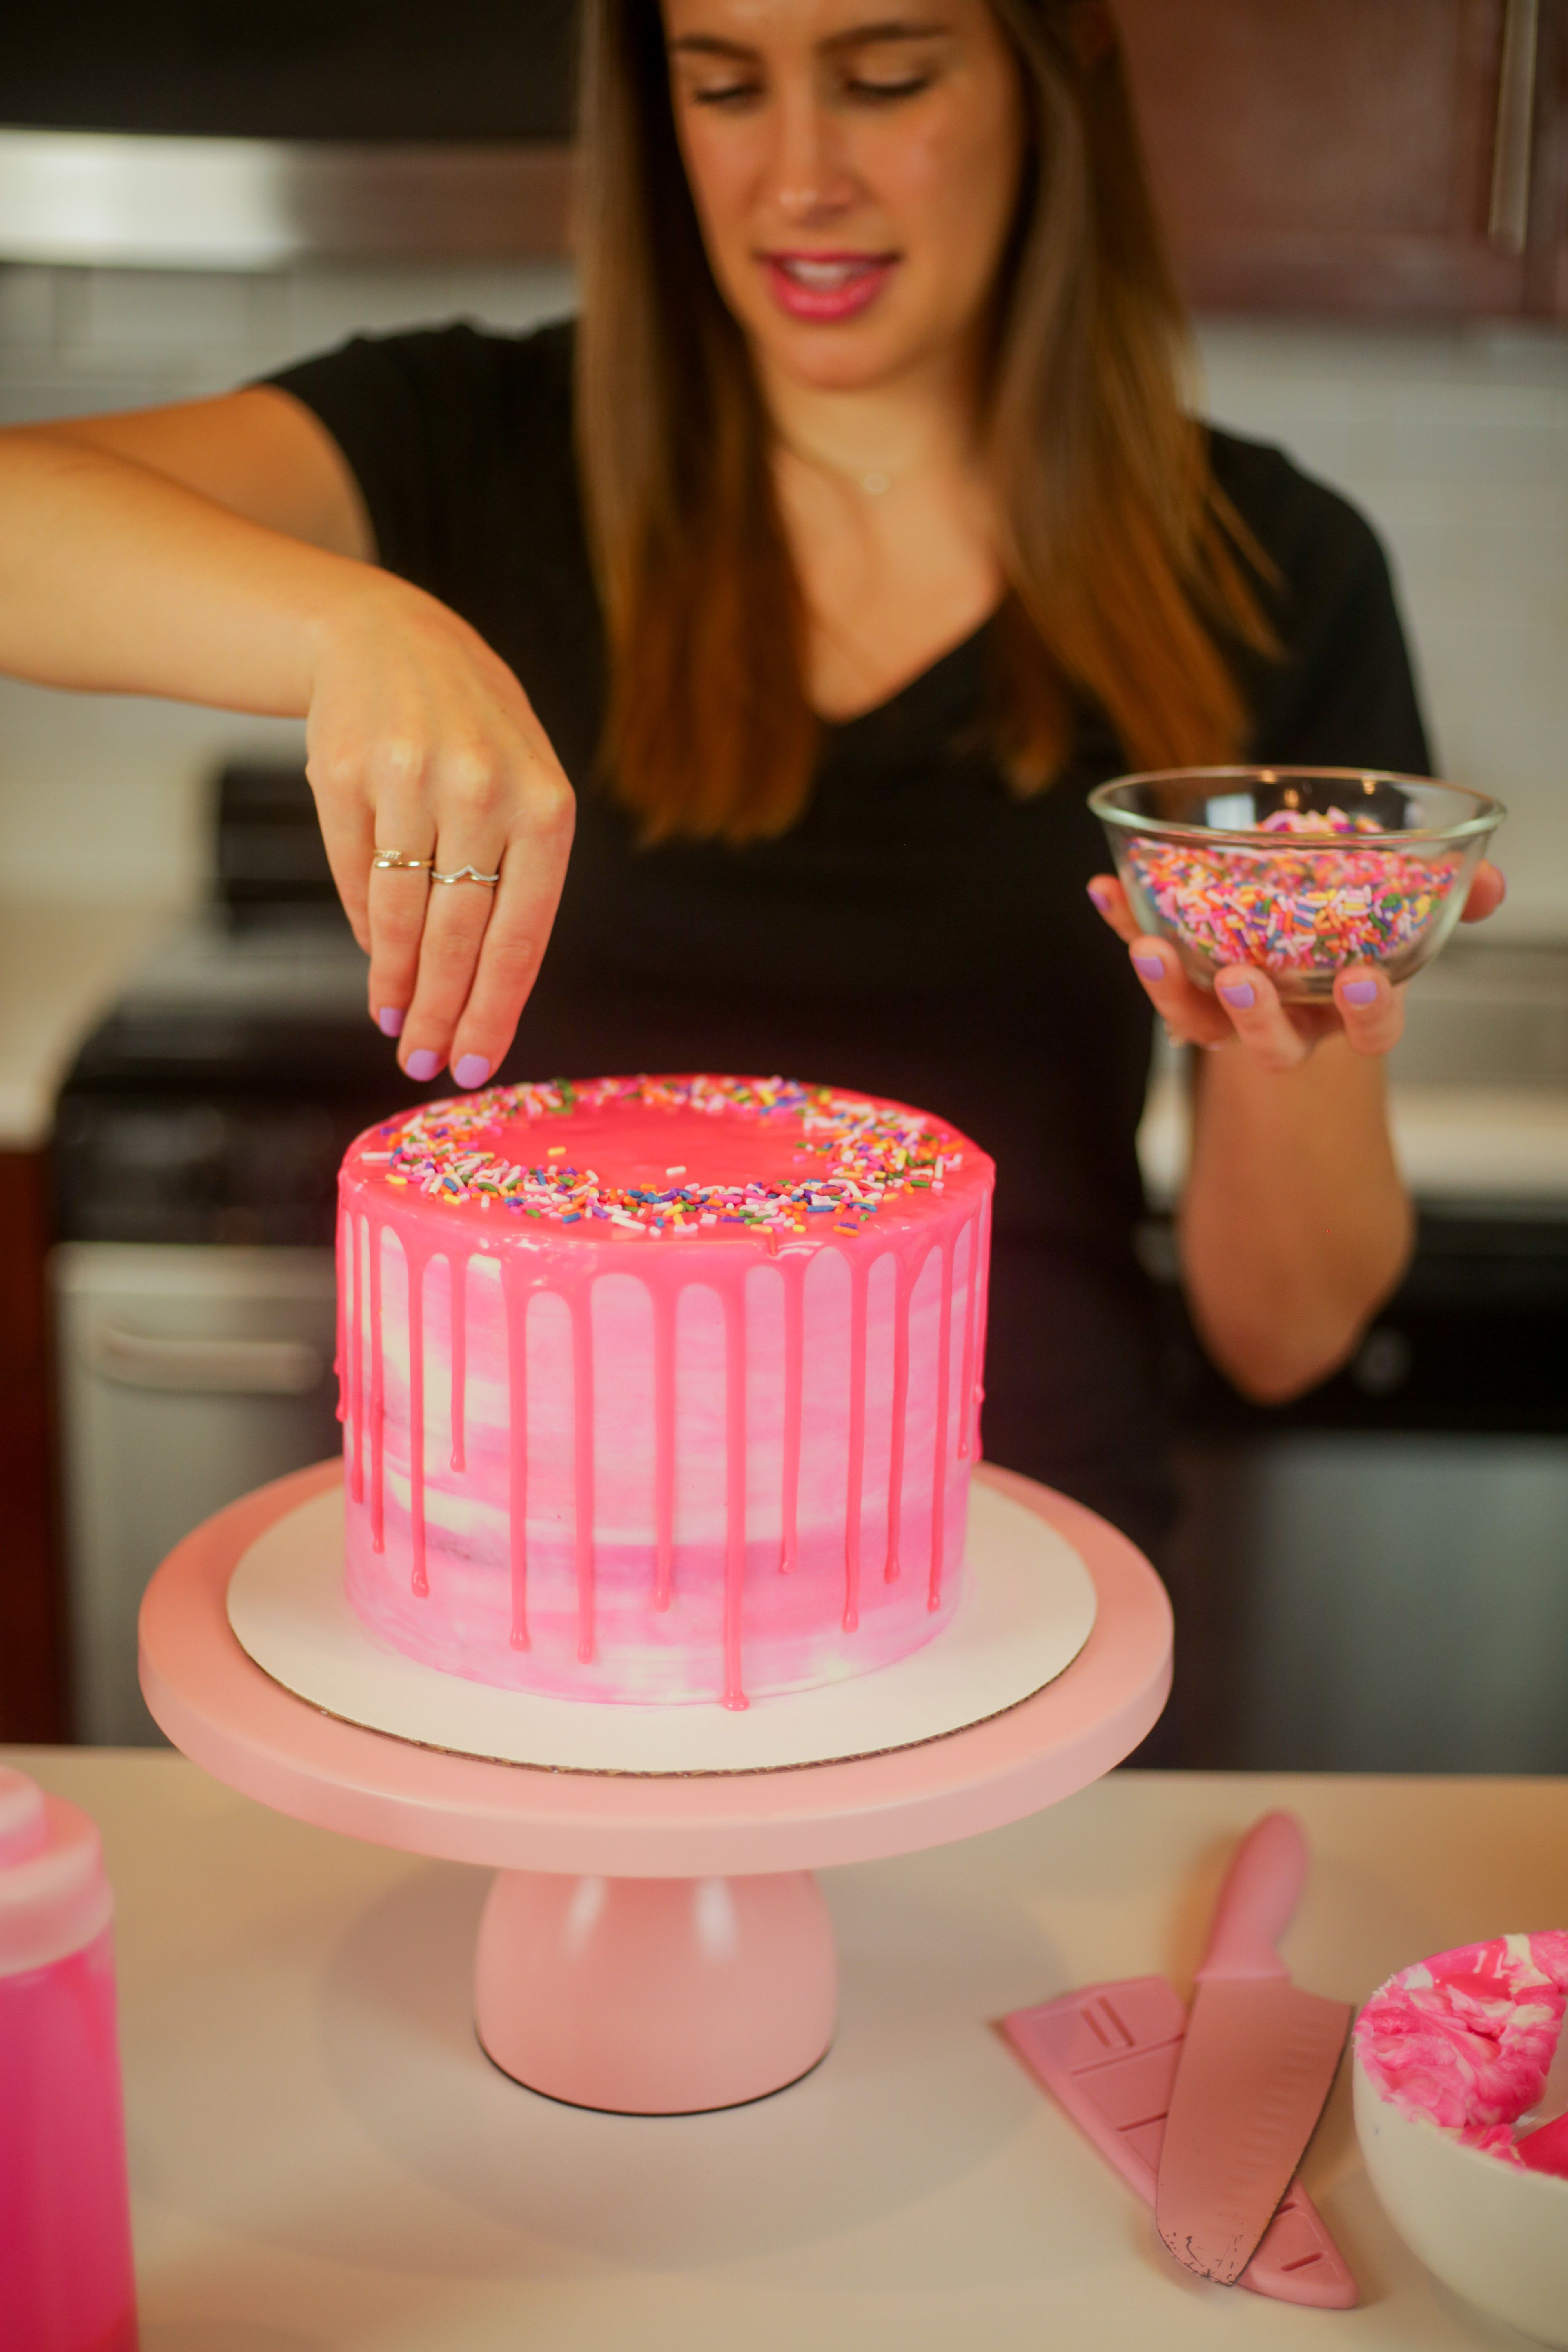 Chelsweets Decorating A Pink Cake